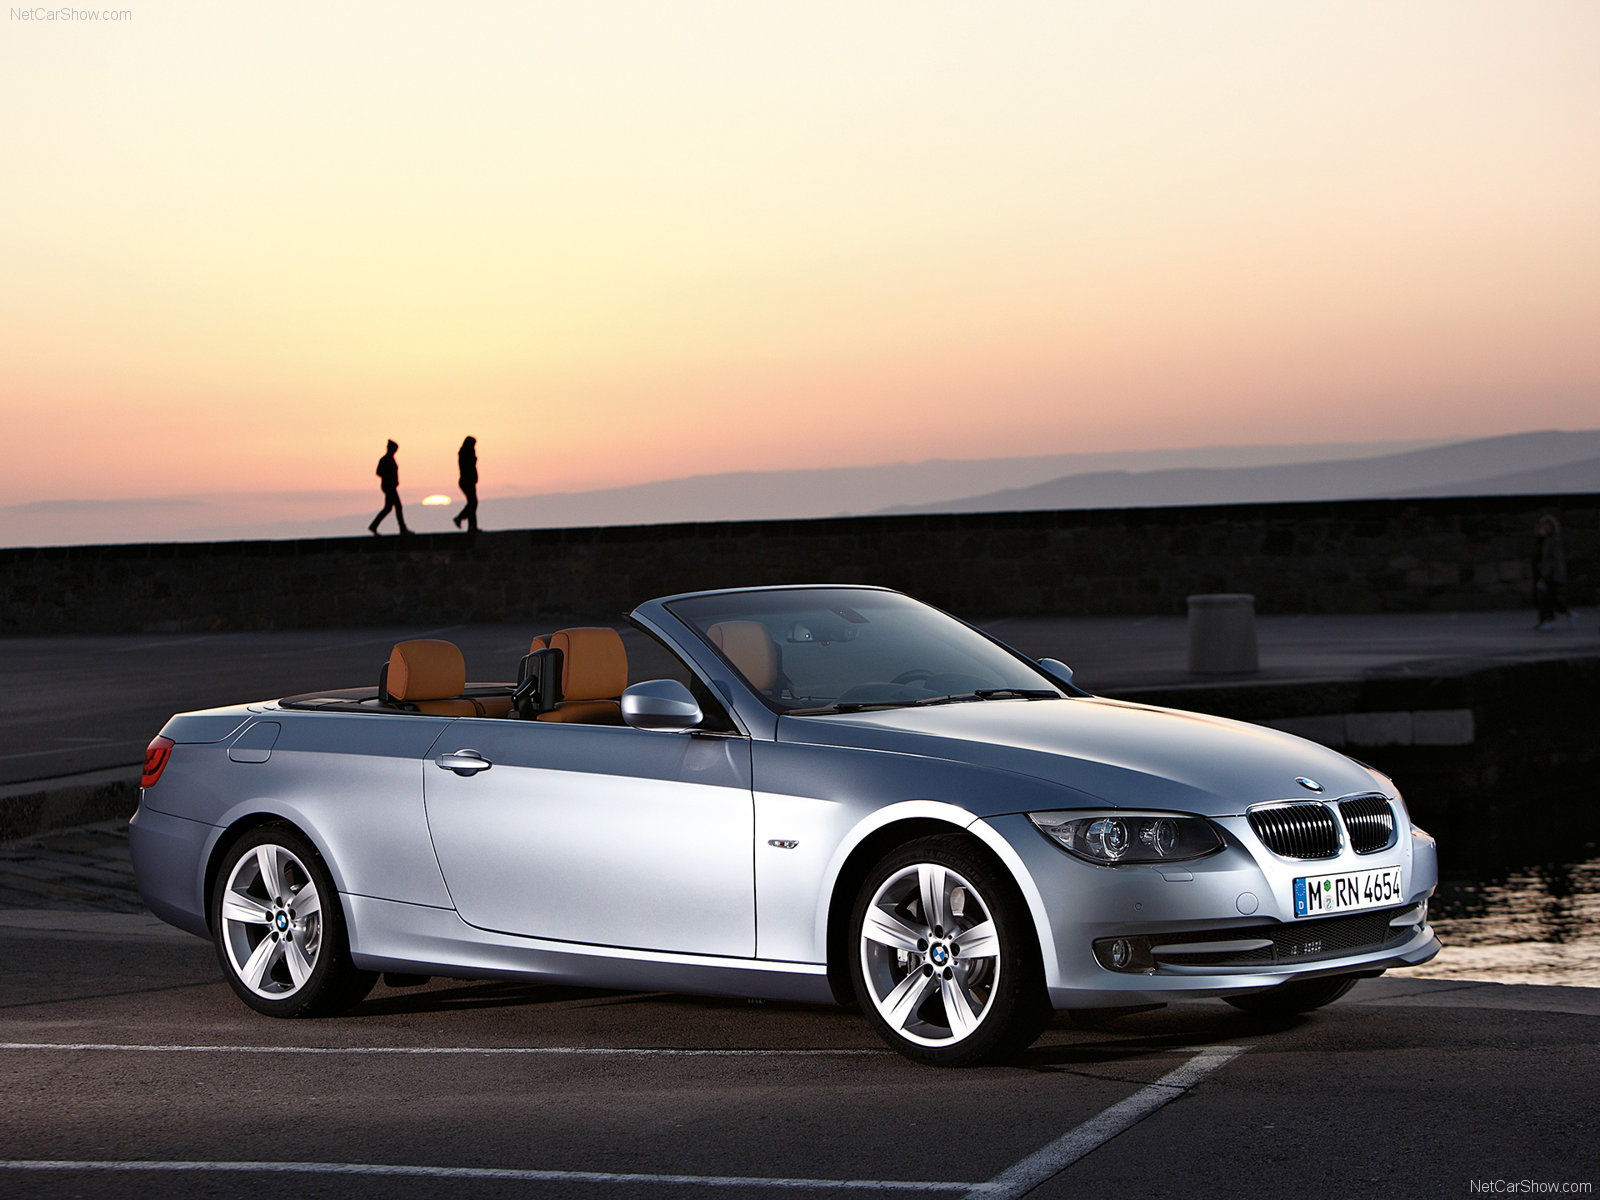 Bmw 3 series convertible front angle road  № 850474 без смс